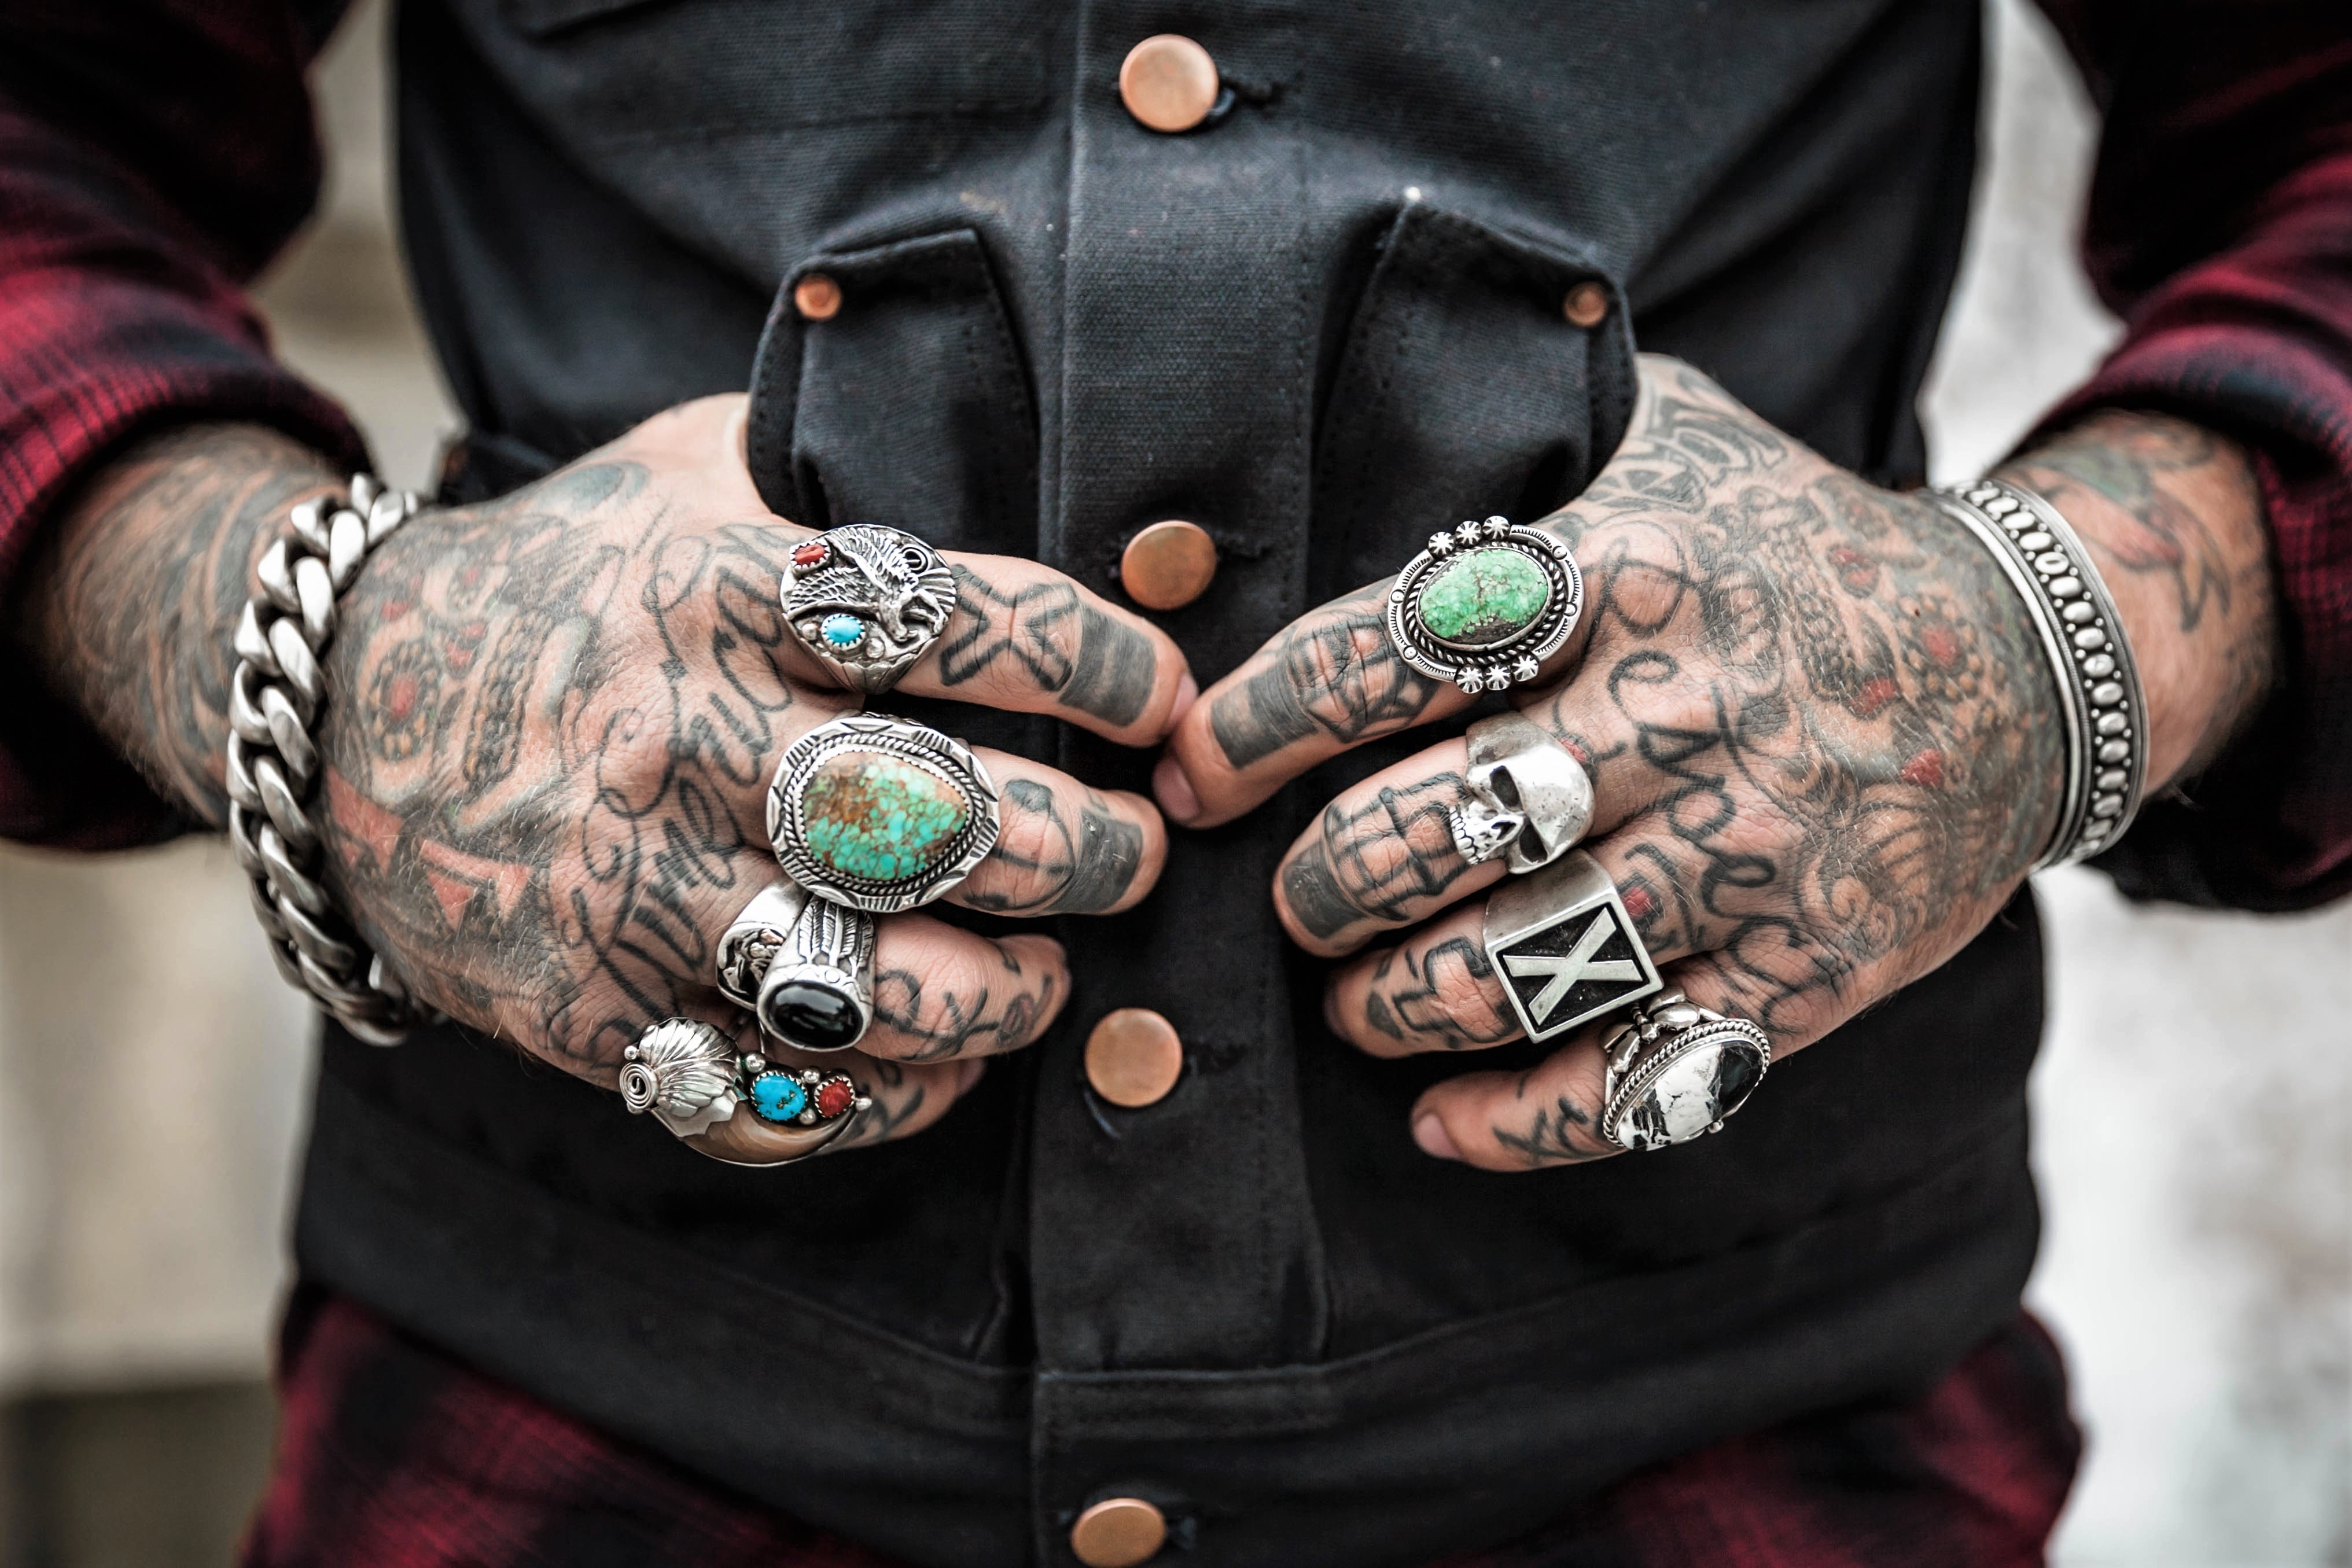 Tattoos and Rings